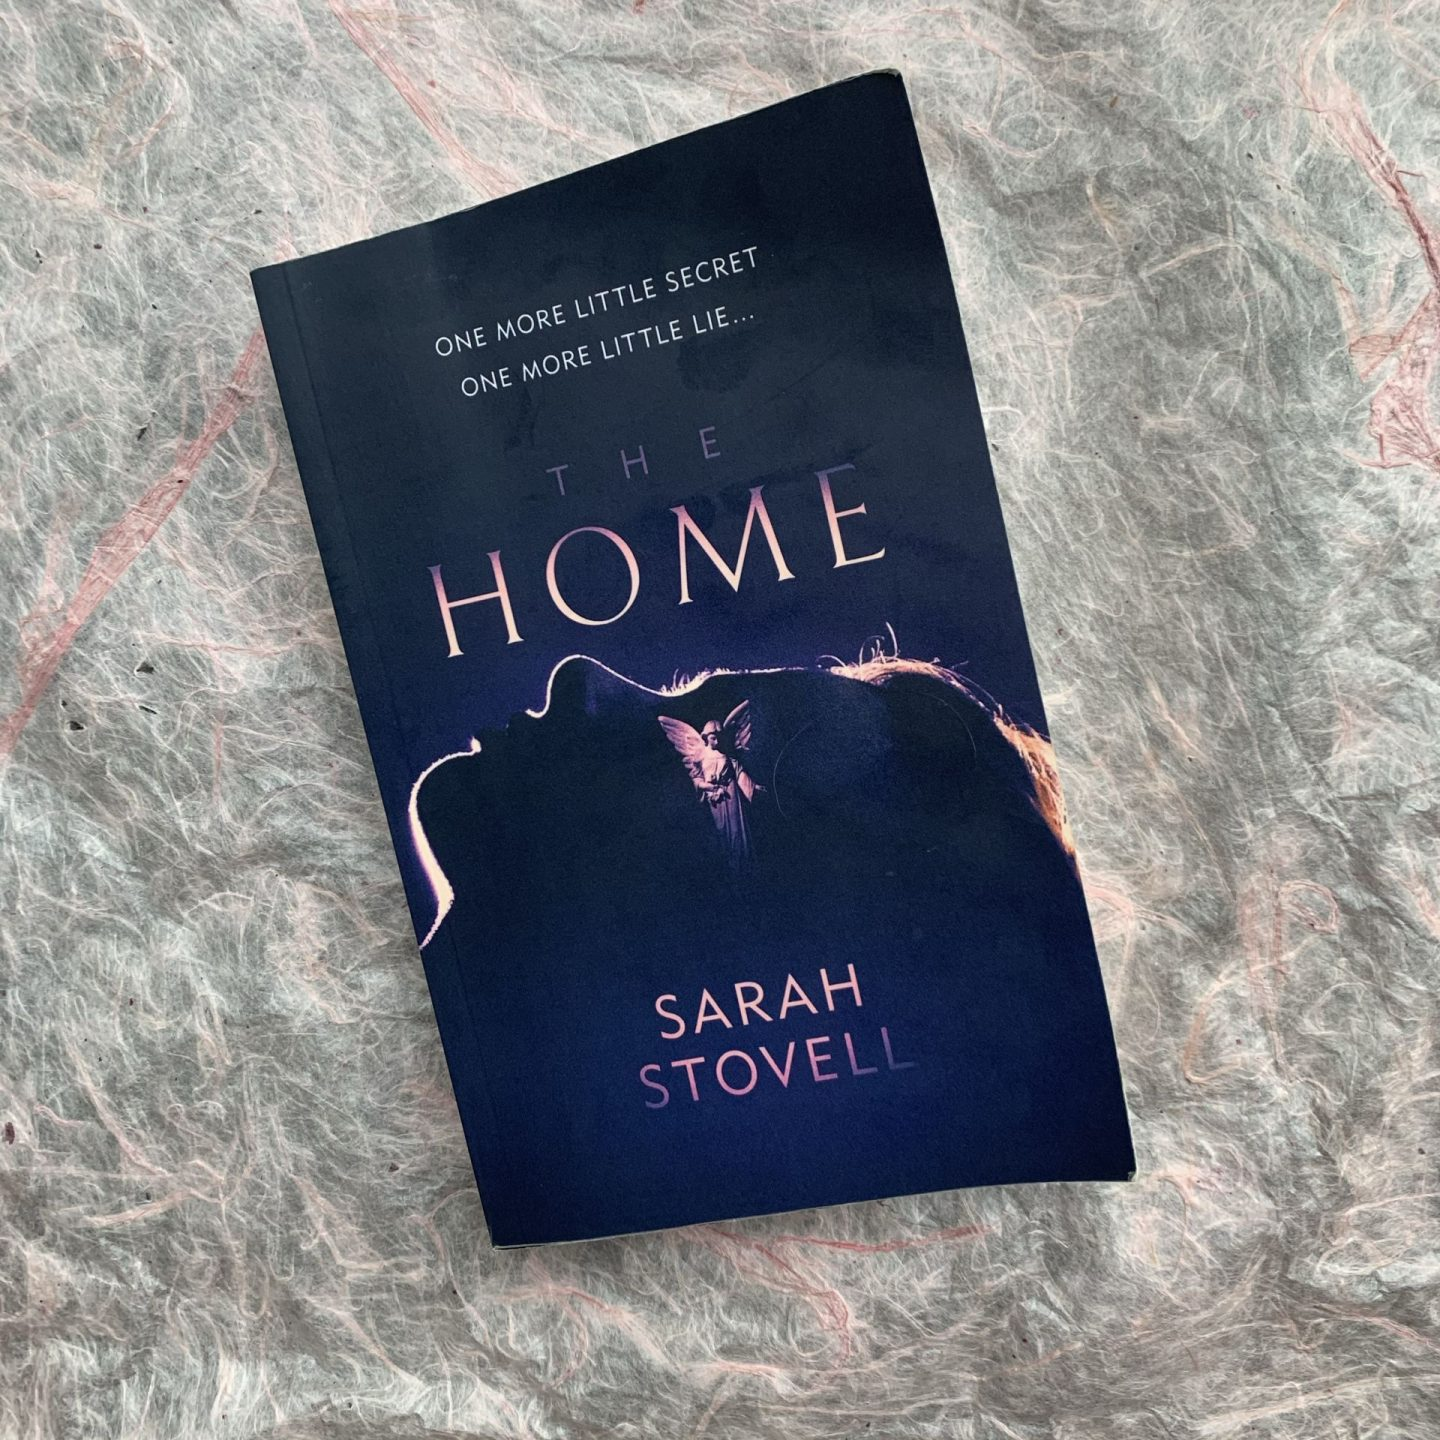 The Home; a visceral, moving thriller